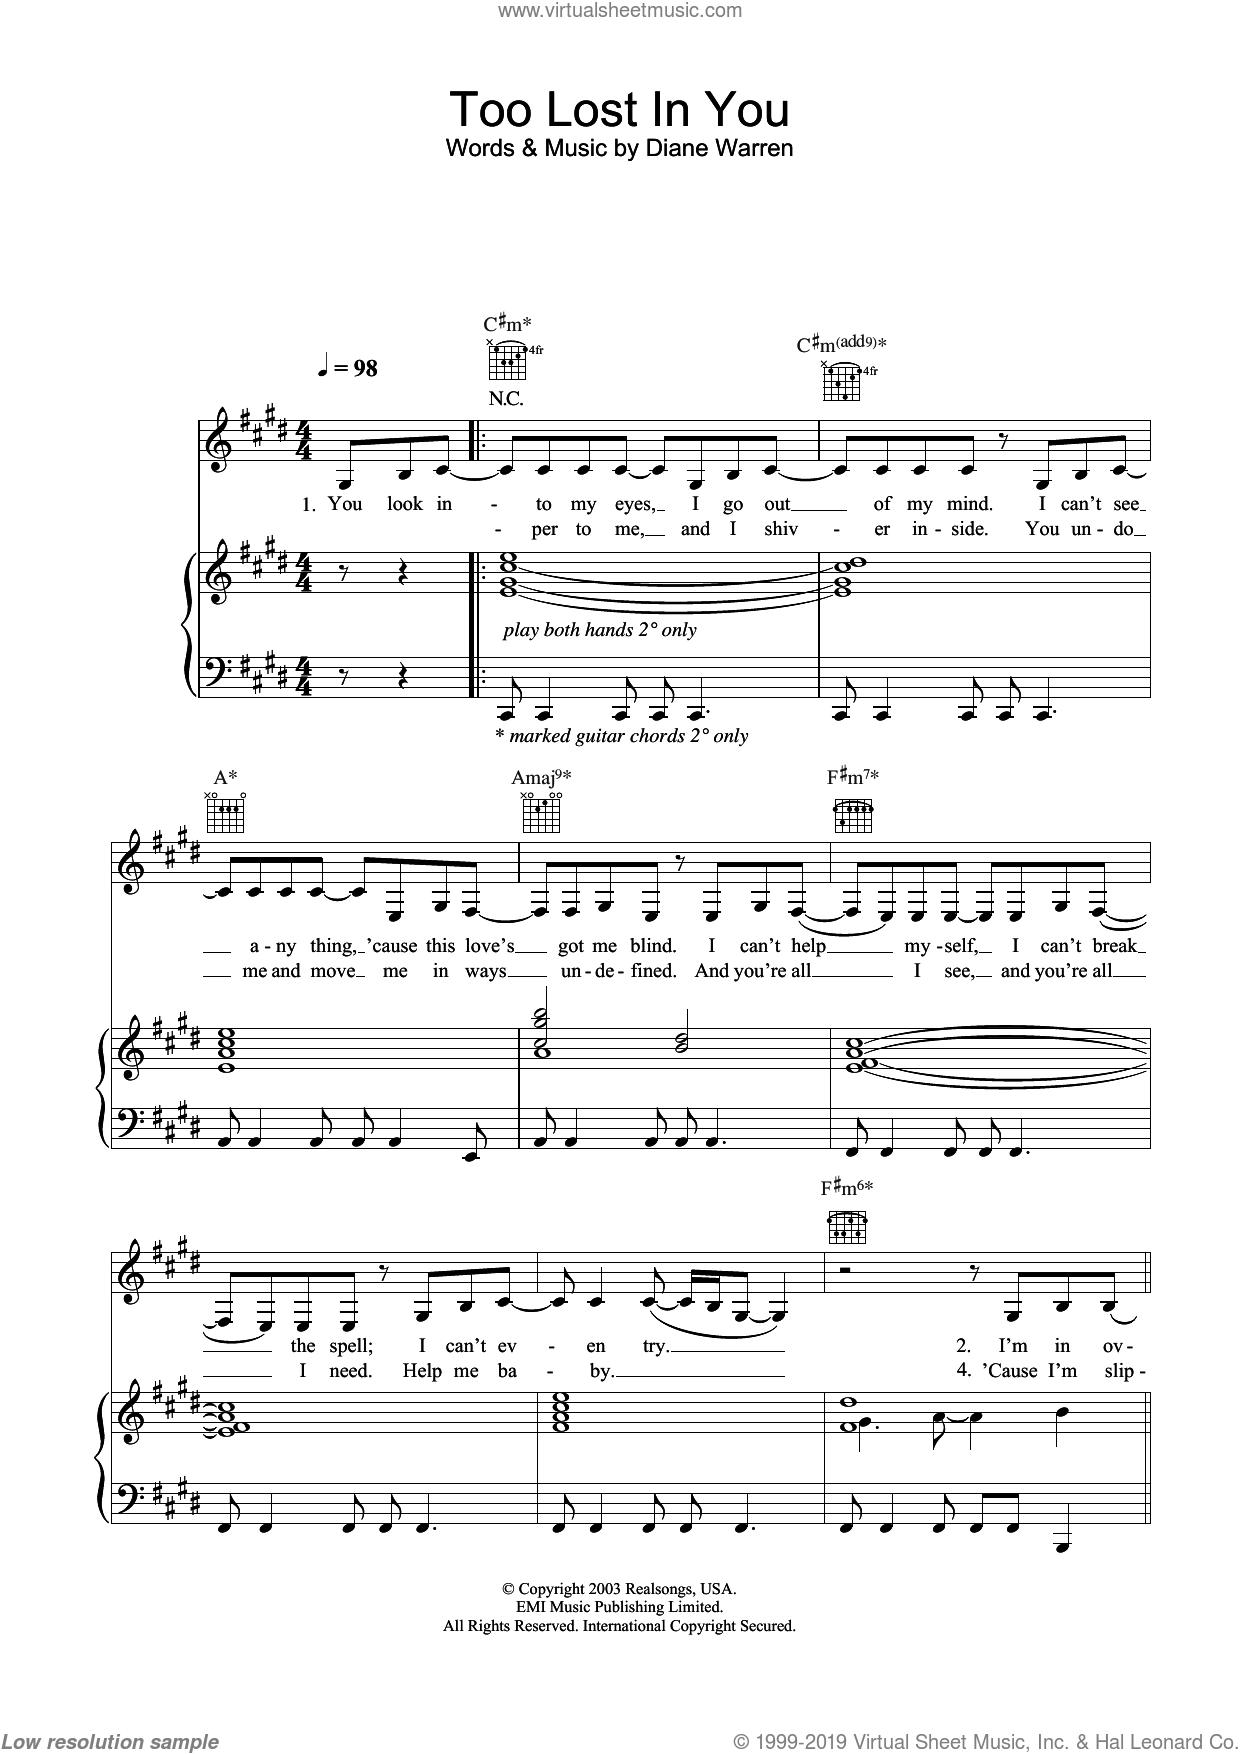 Too Lost In You sheet music for voice, piano or guitar by Sugababes